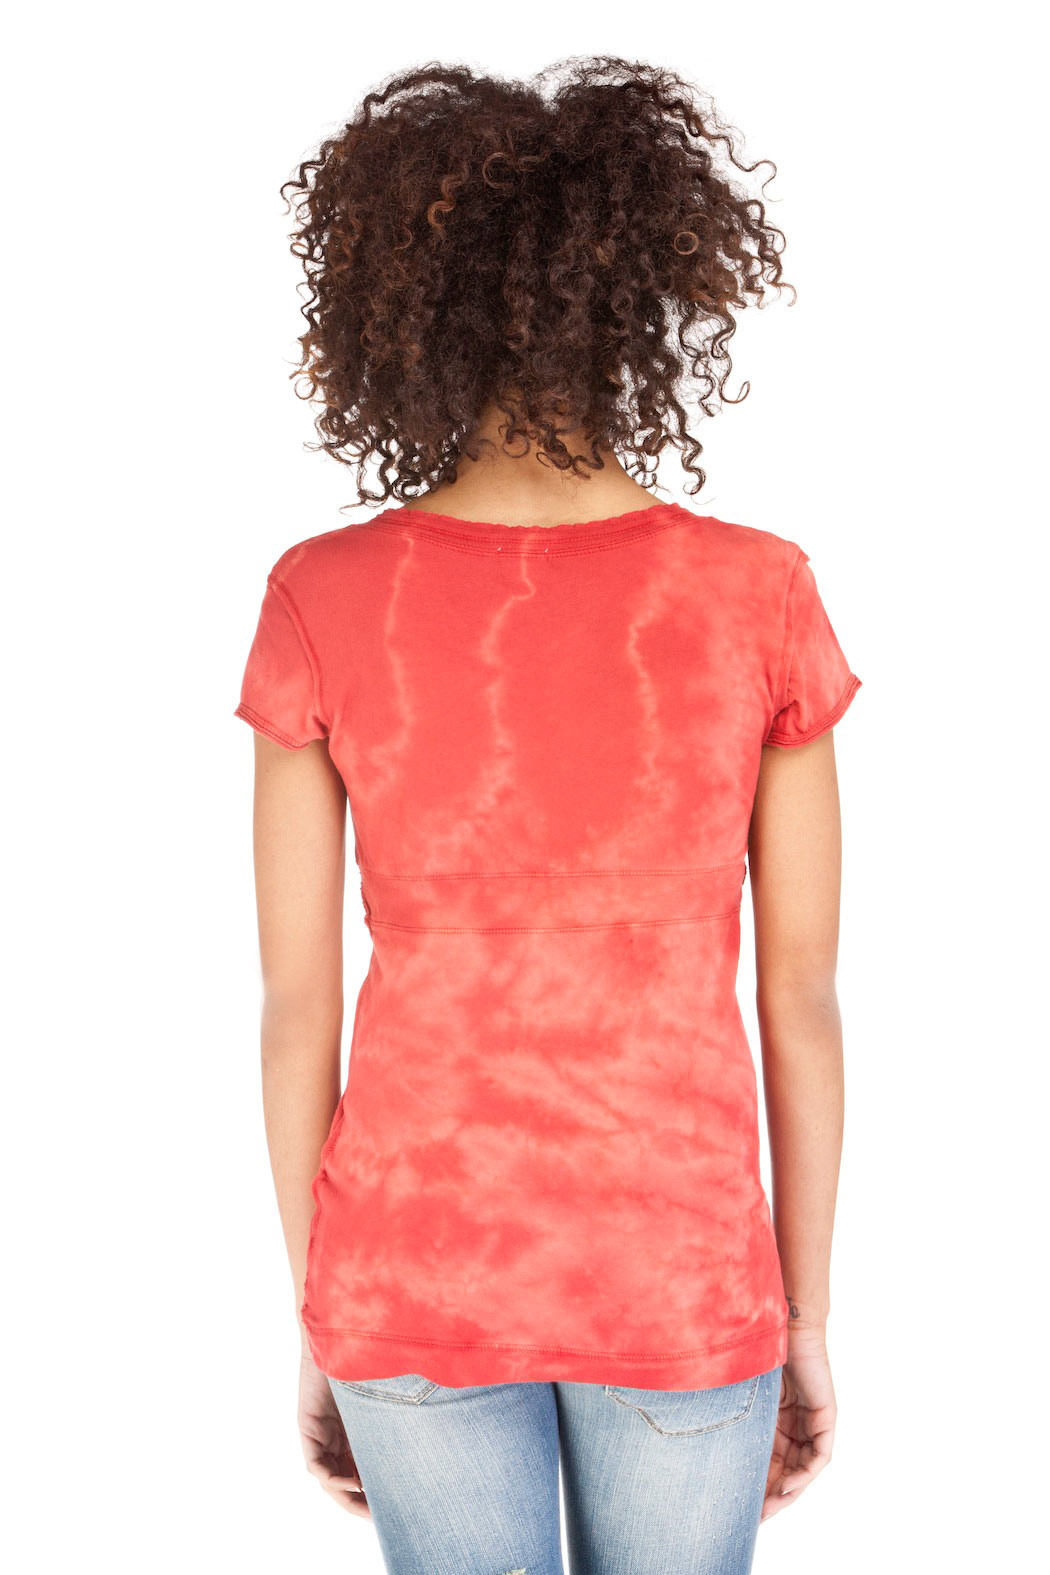 Maurices Rust Orange Cotton Top - Back Cropped Image